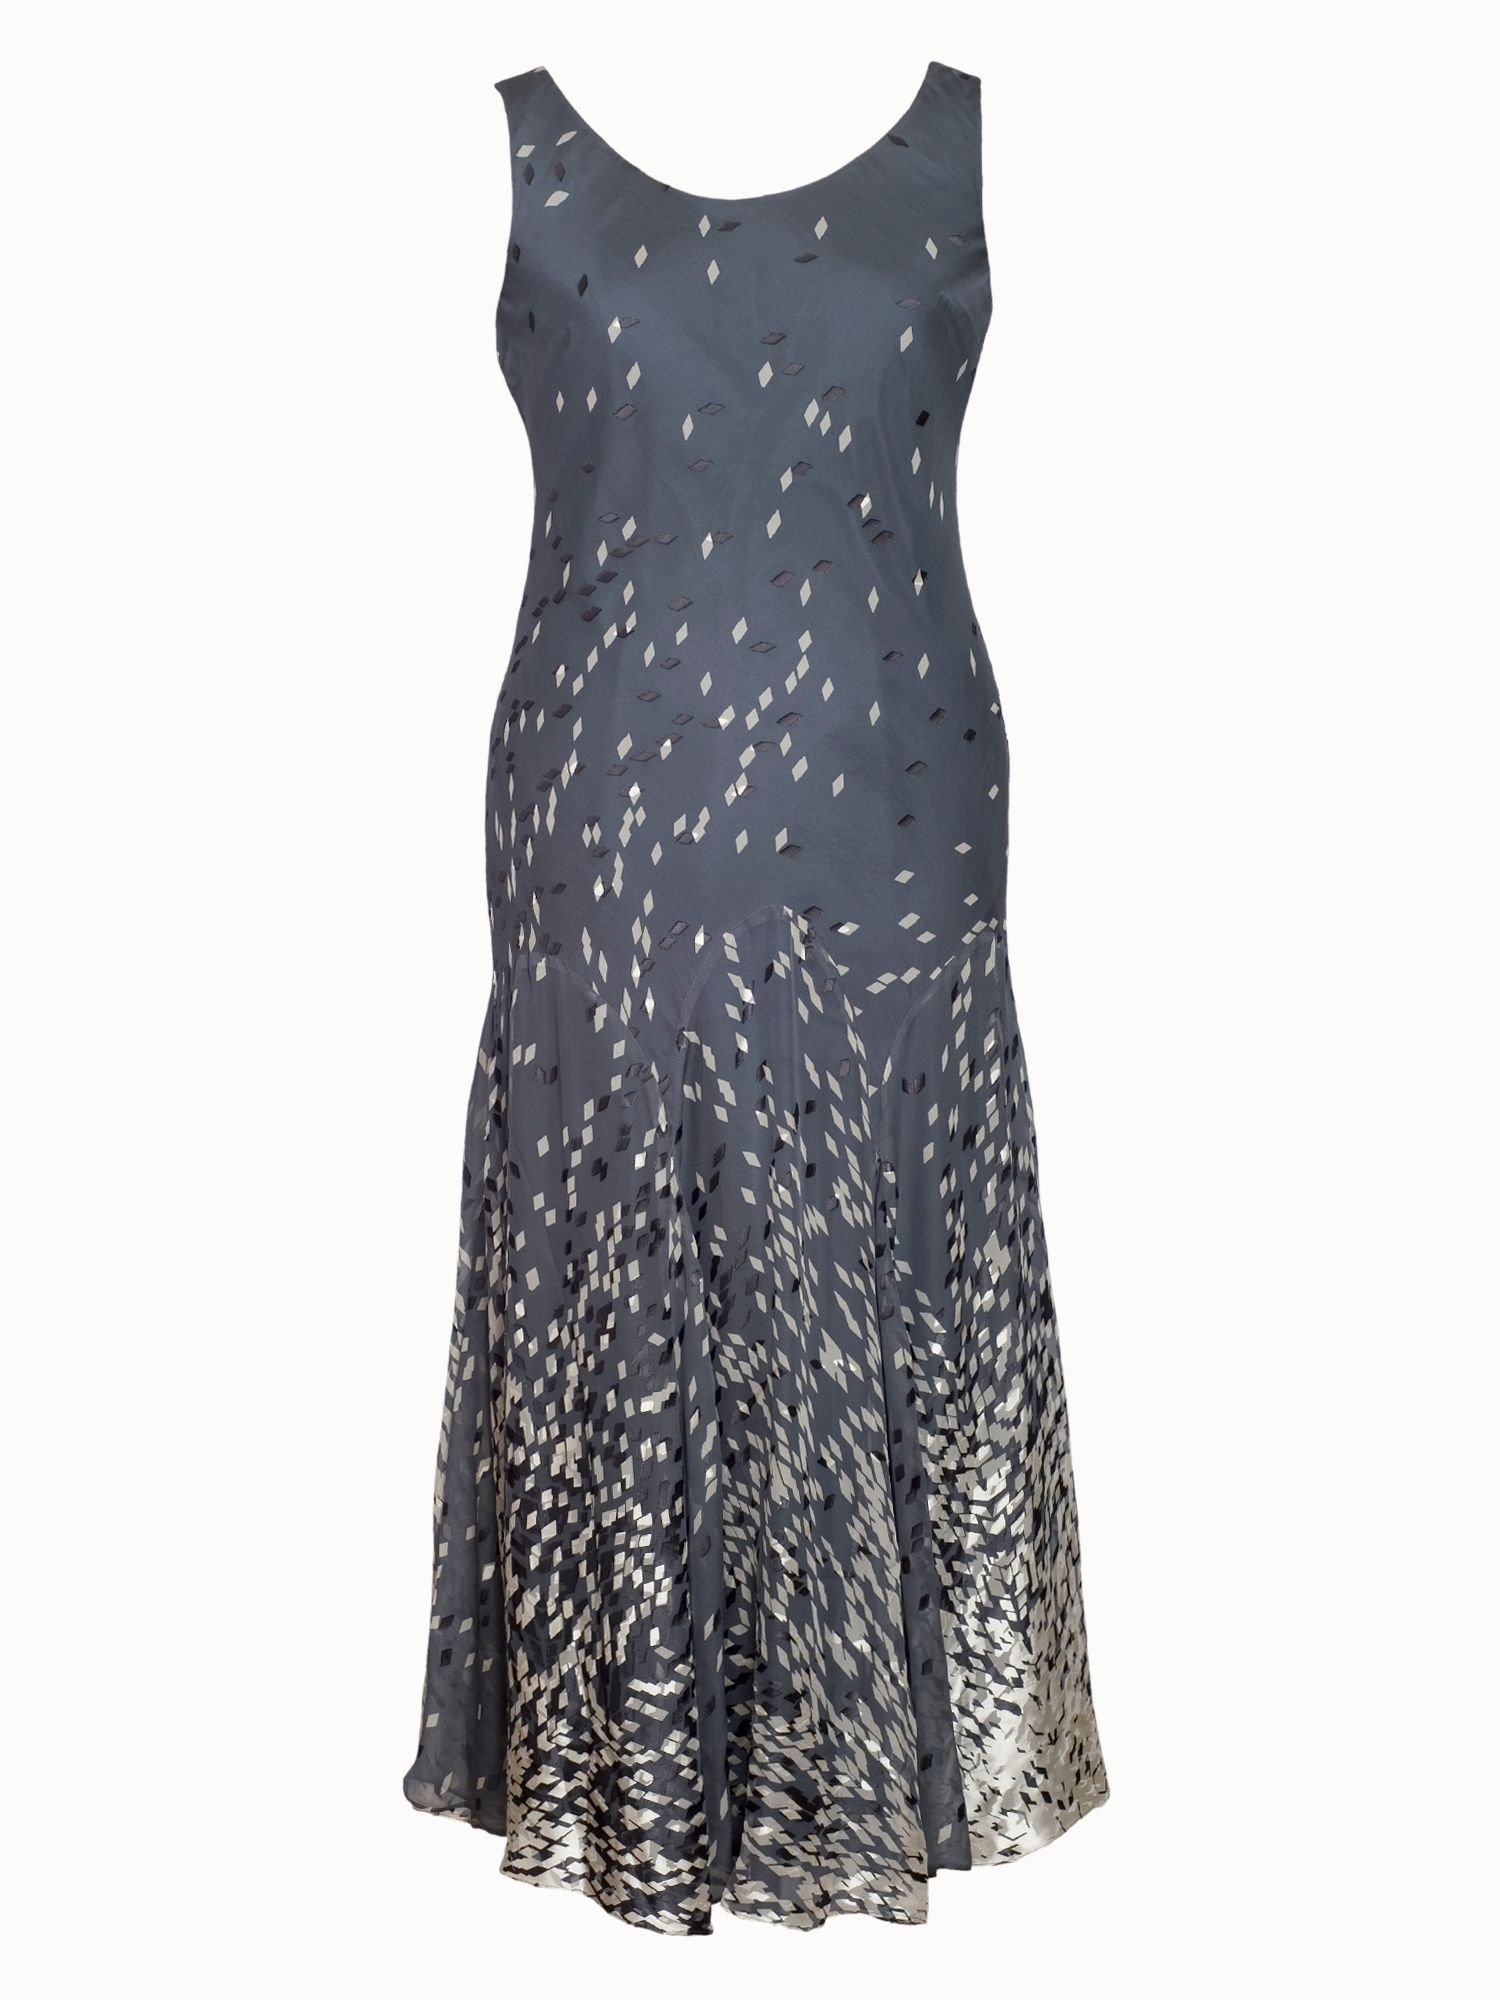 Diamond print devoree dress